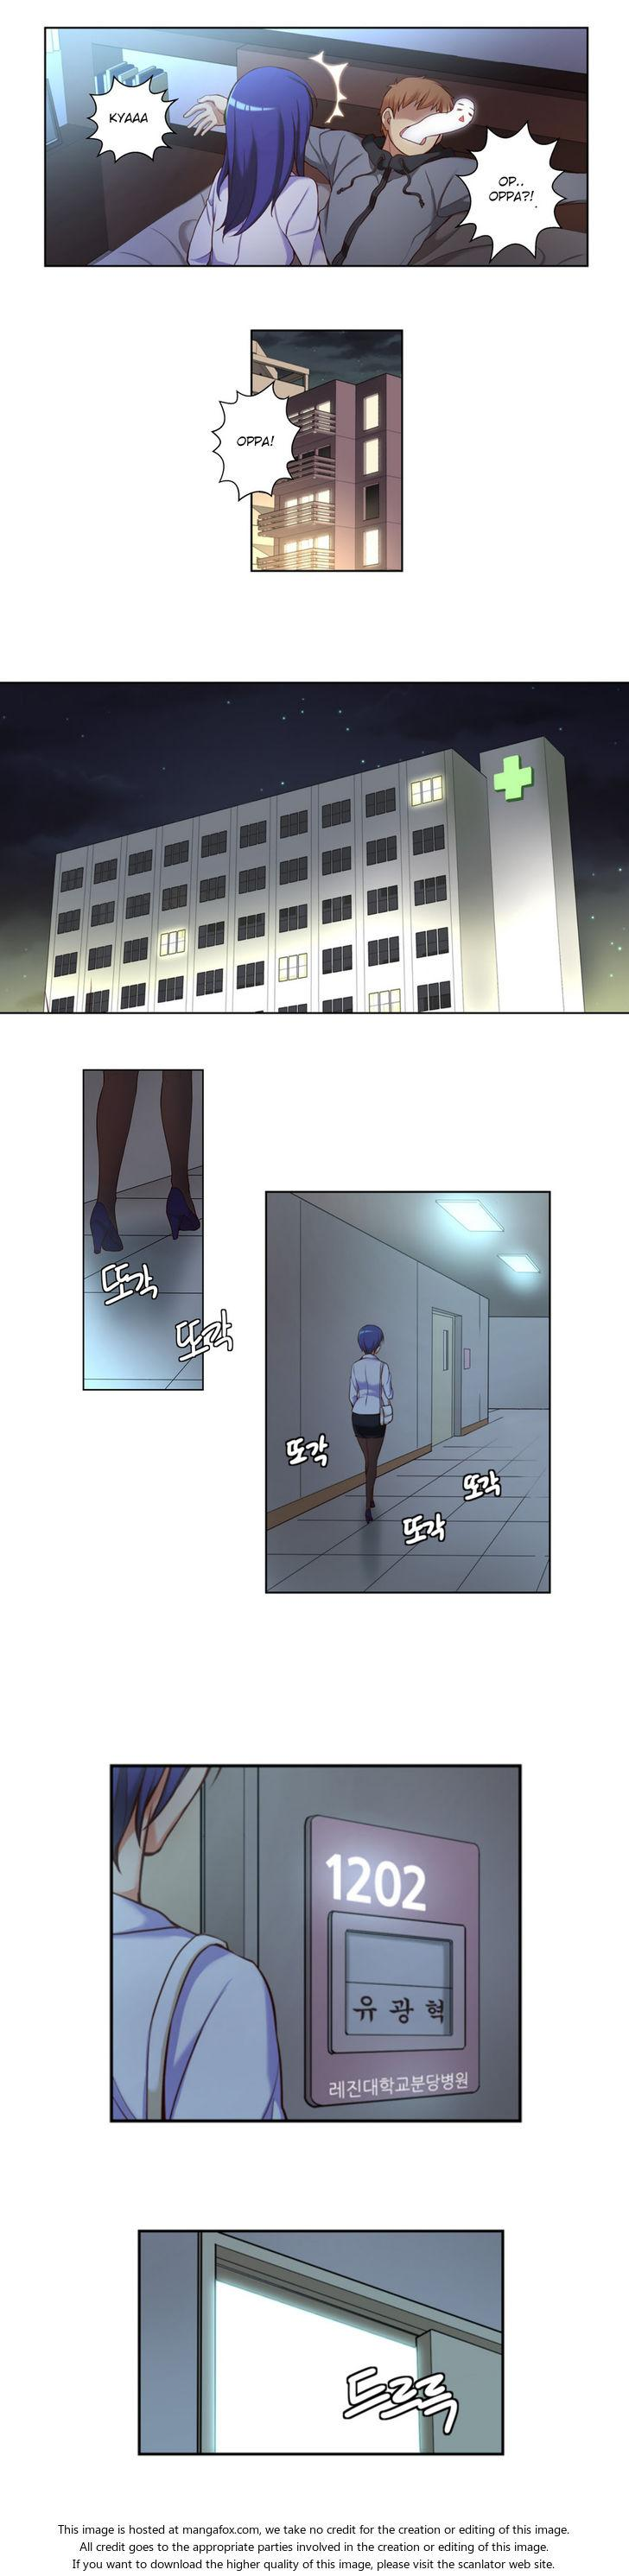 [Donggul Gom] She is Young (English) Part 1/2 180